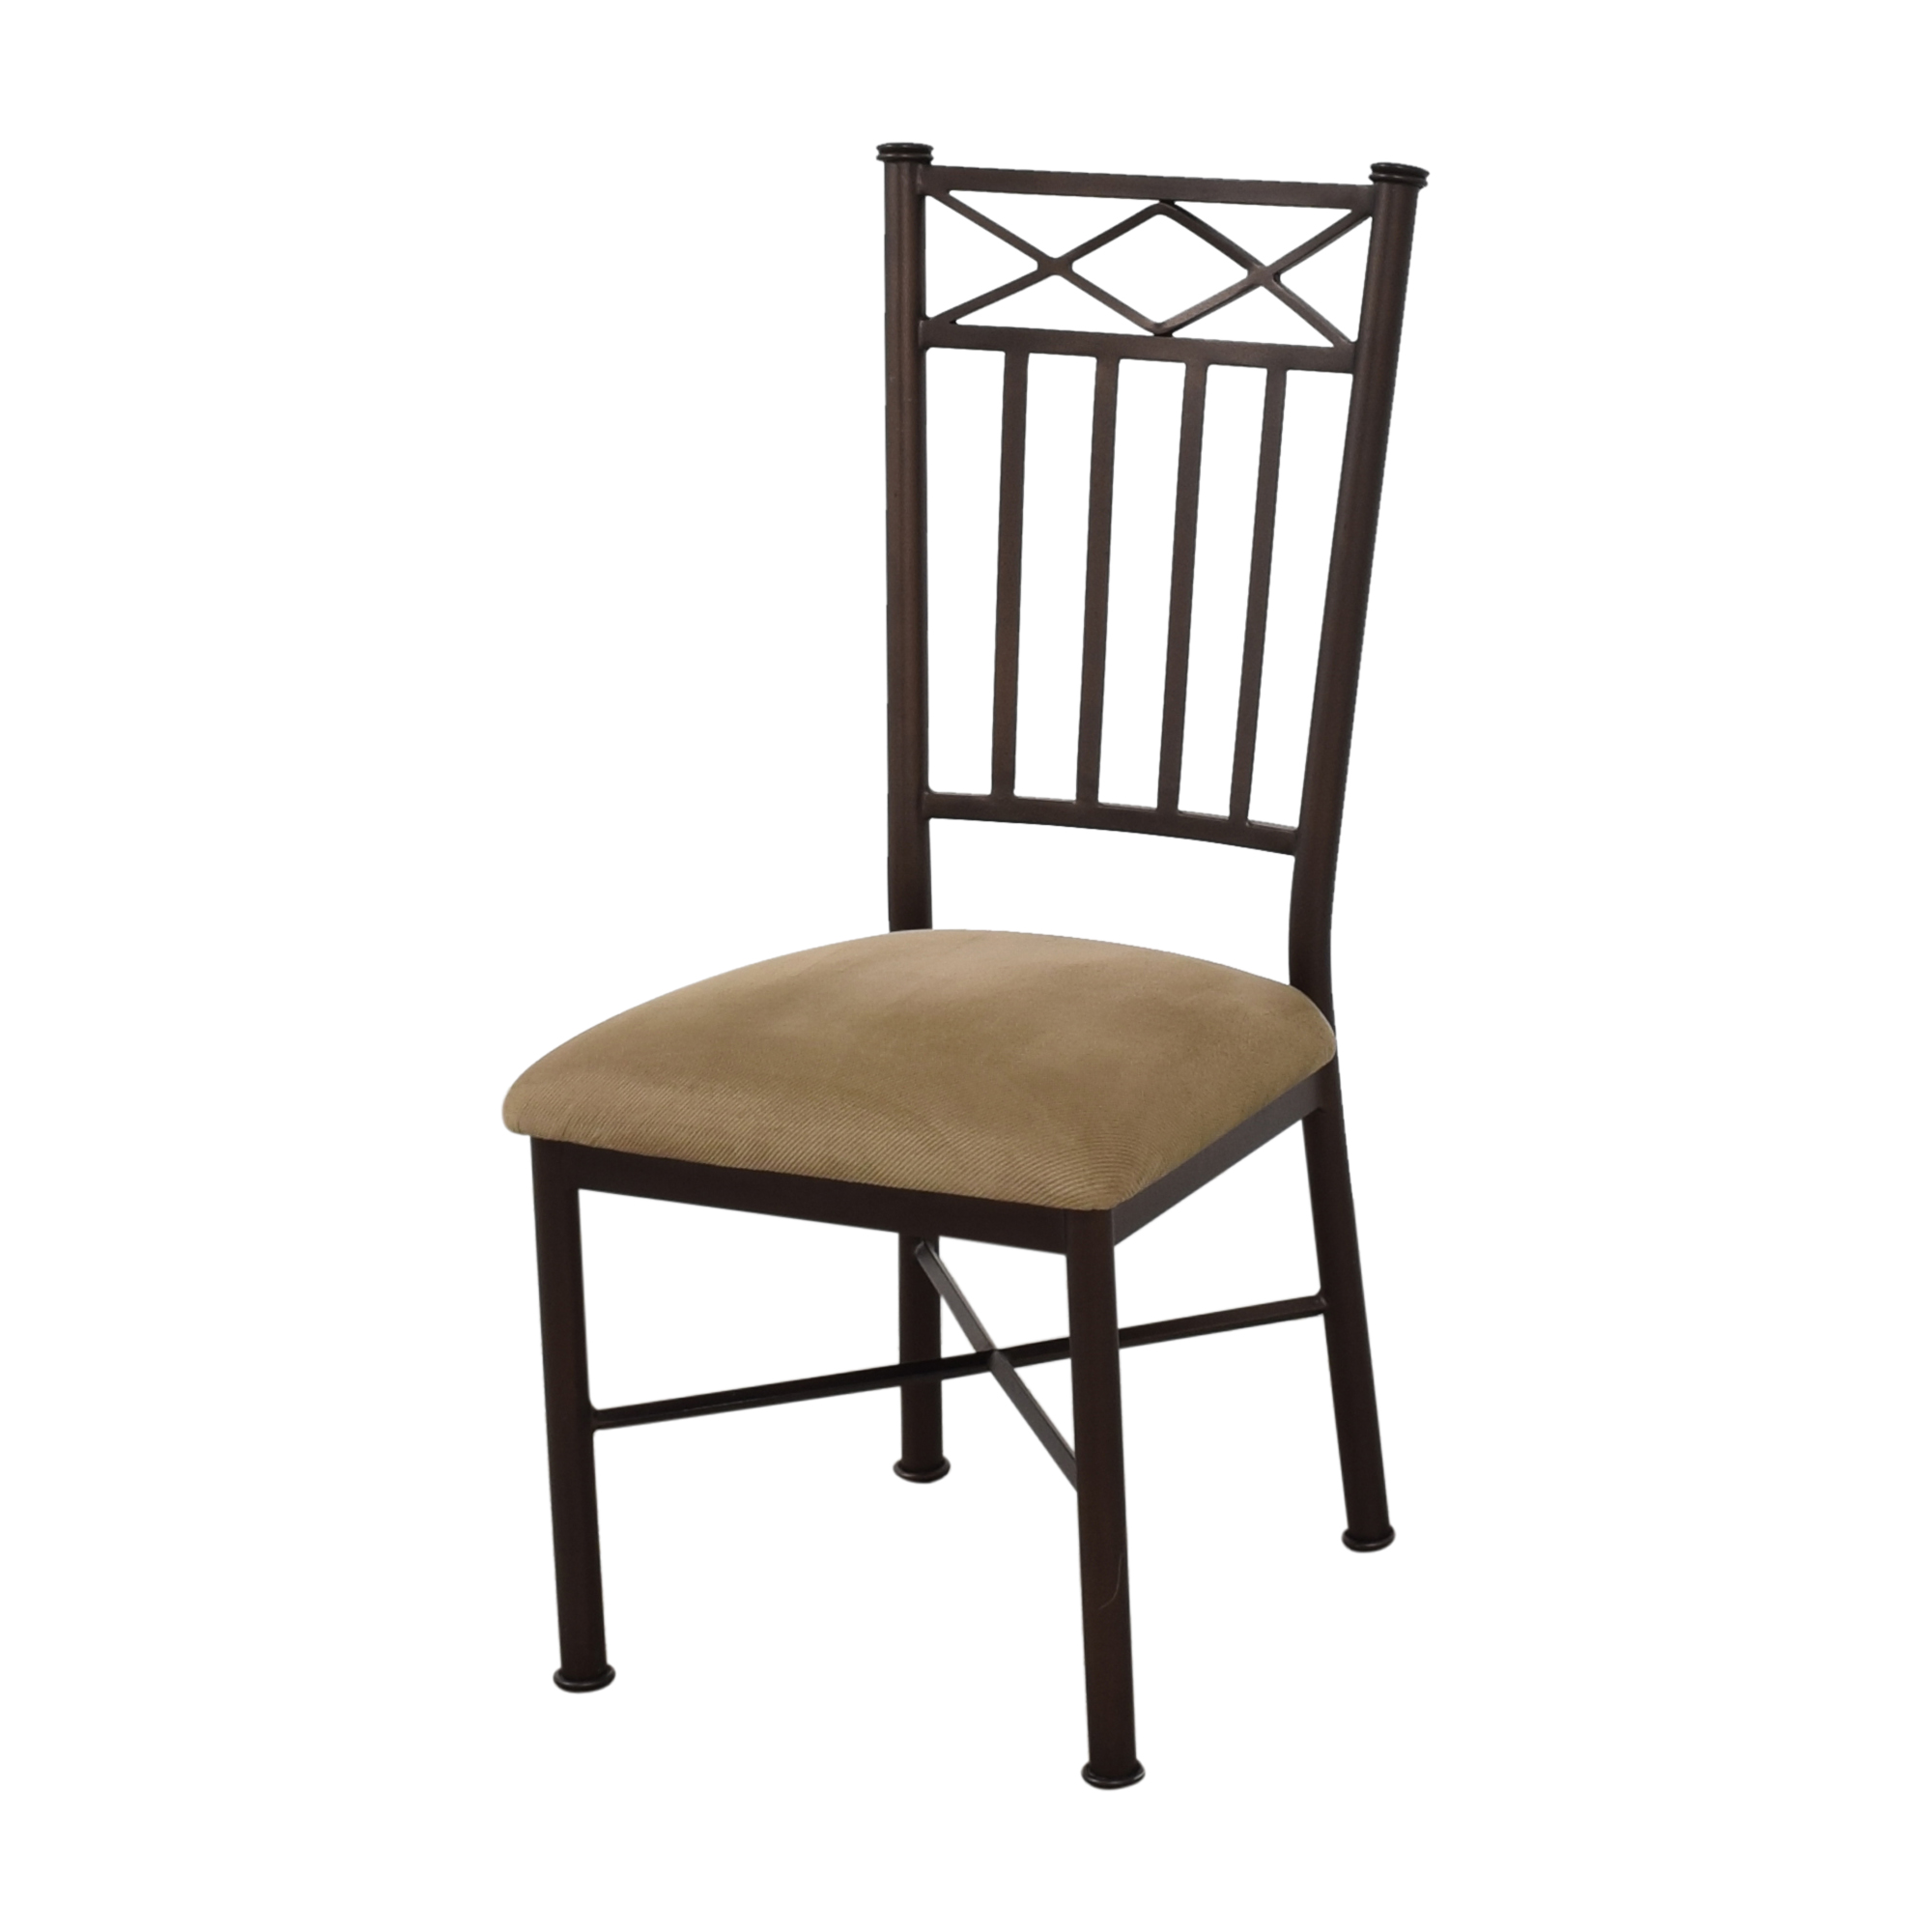 Tempo Furniture Arlington Dining Chairs / Chairs